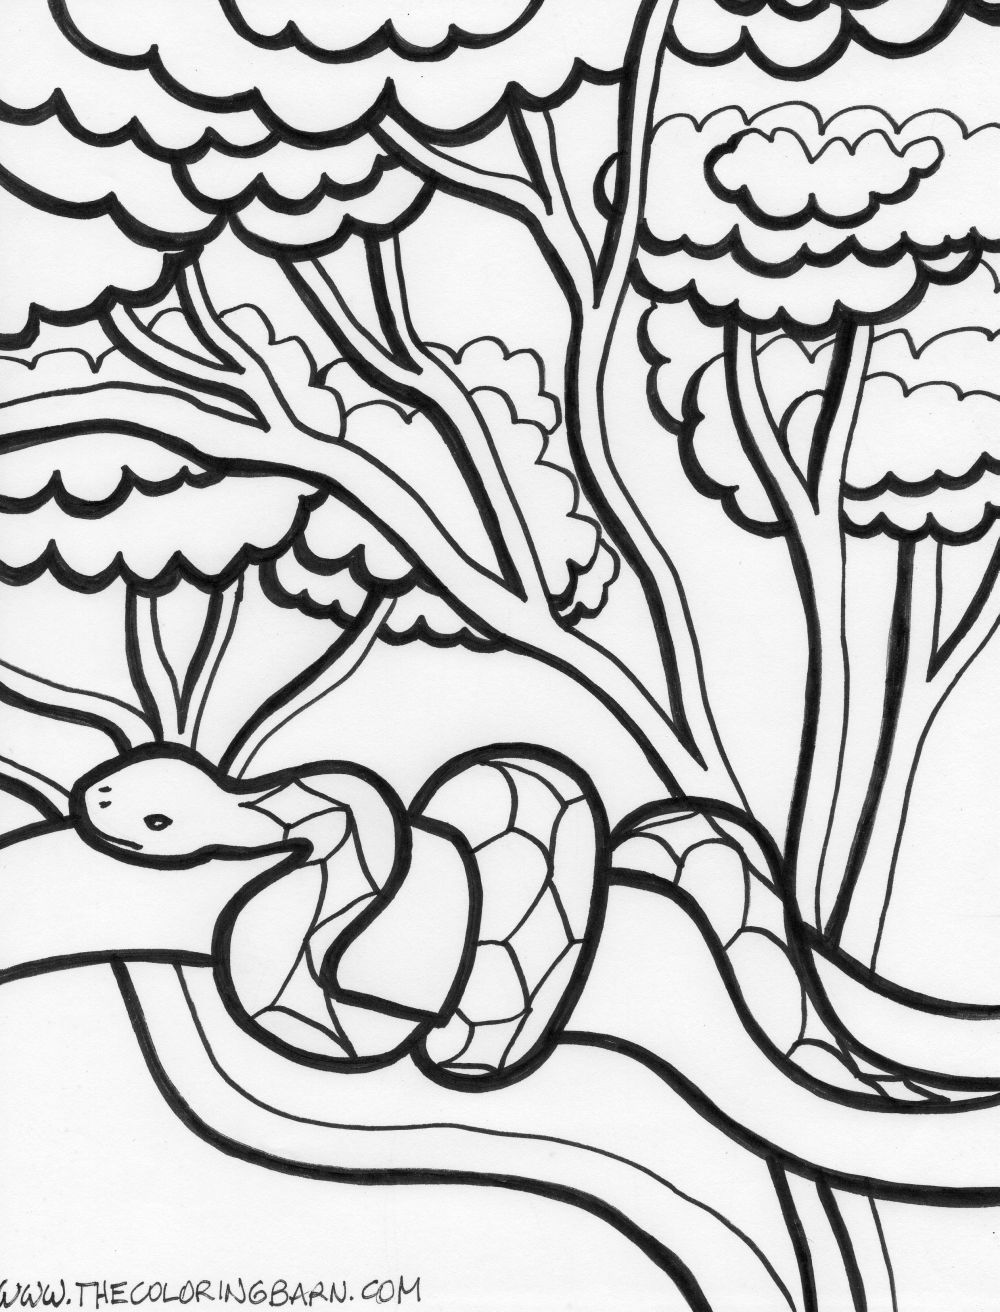 Rainforest flower coloring pages - Coloring Picture Printable Snake Coloring Pages Coloring Me Snake Coloring Pages For Kids